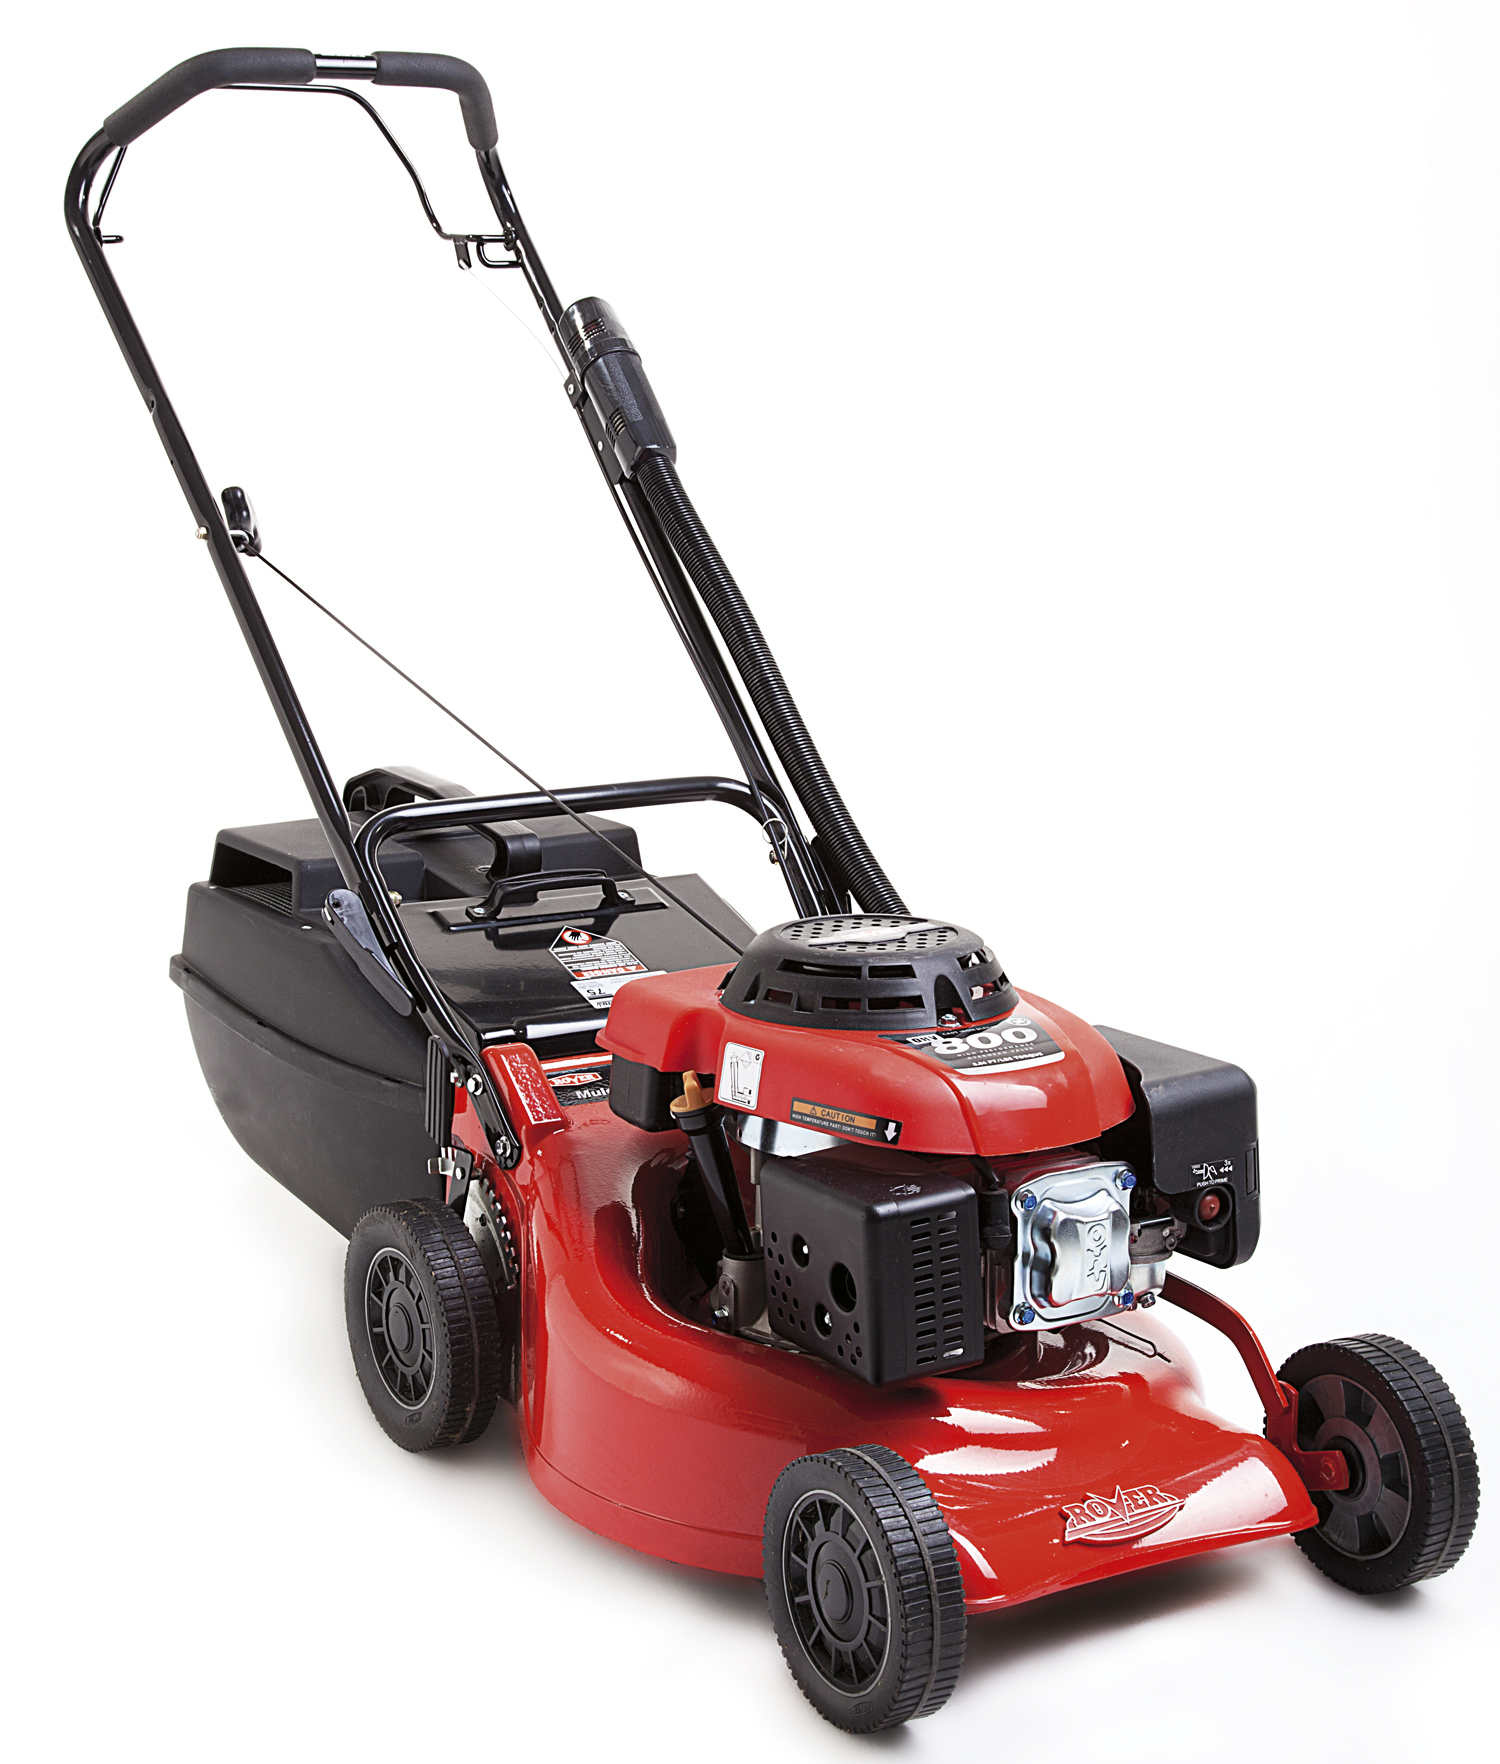 Icon Lawn Mower Free image #14734